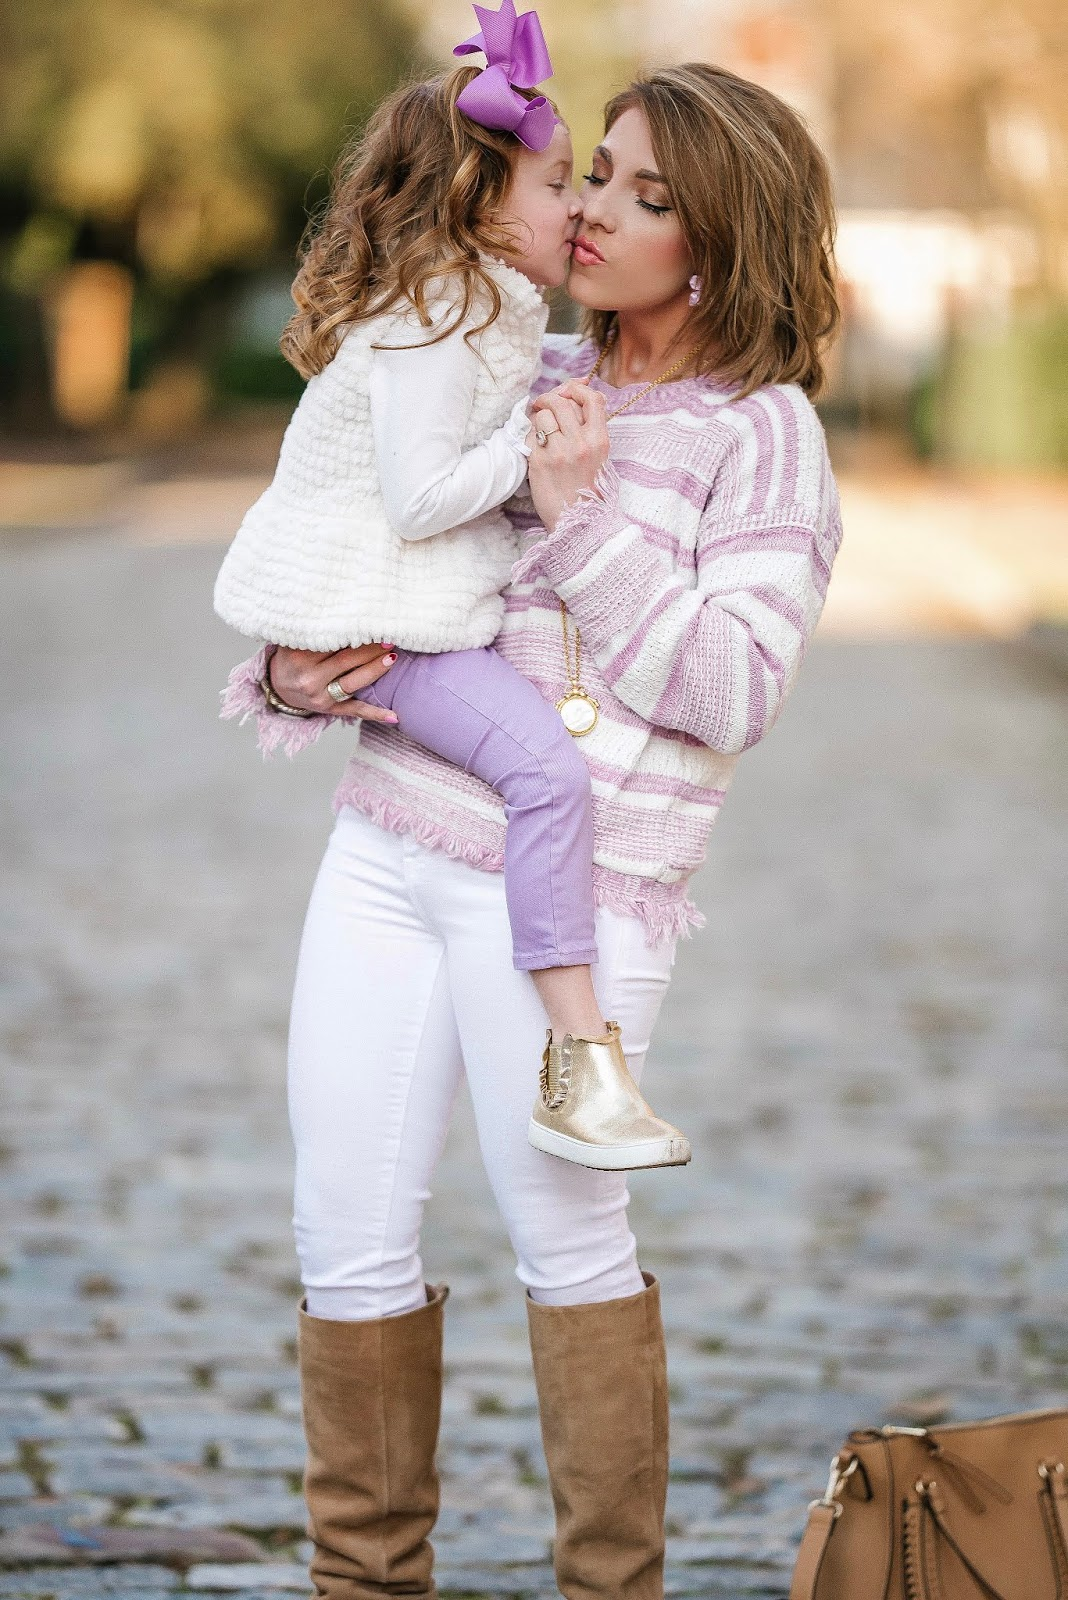 Lavender Love: Mommy & Me Pre-Spring Look - Something Delightful Blog